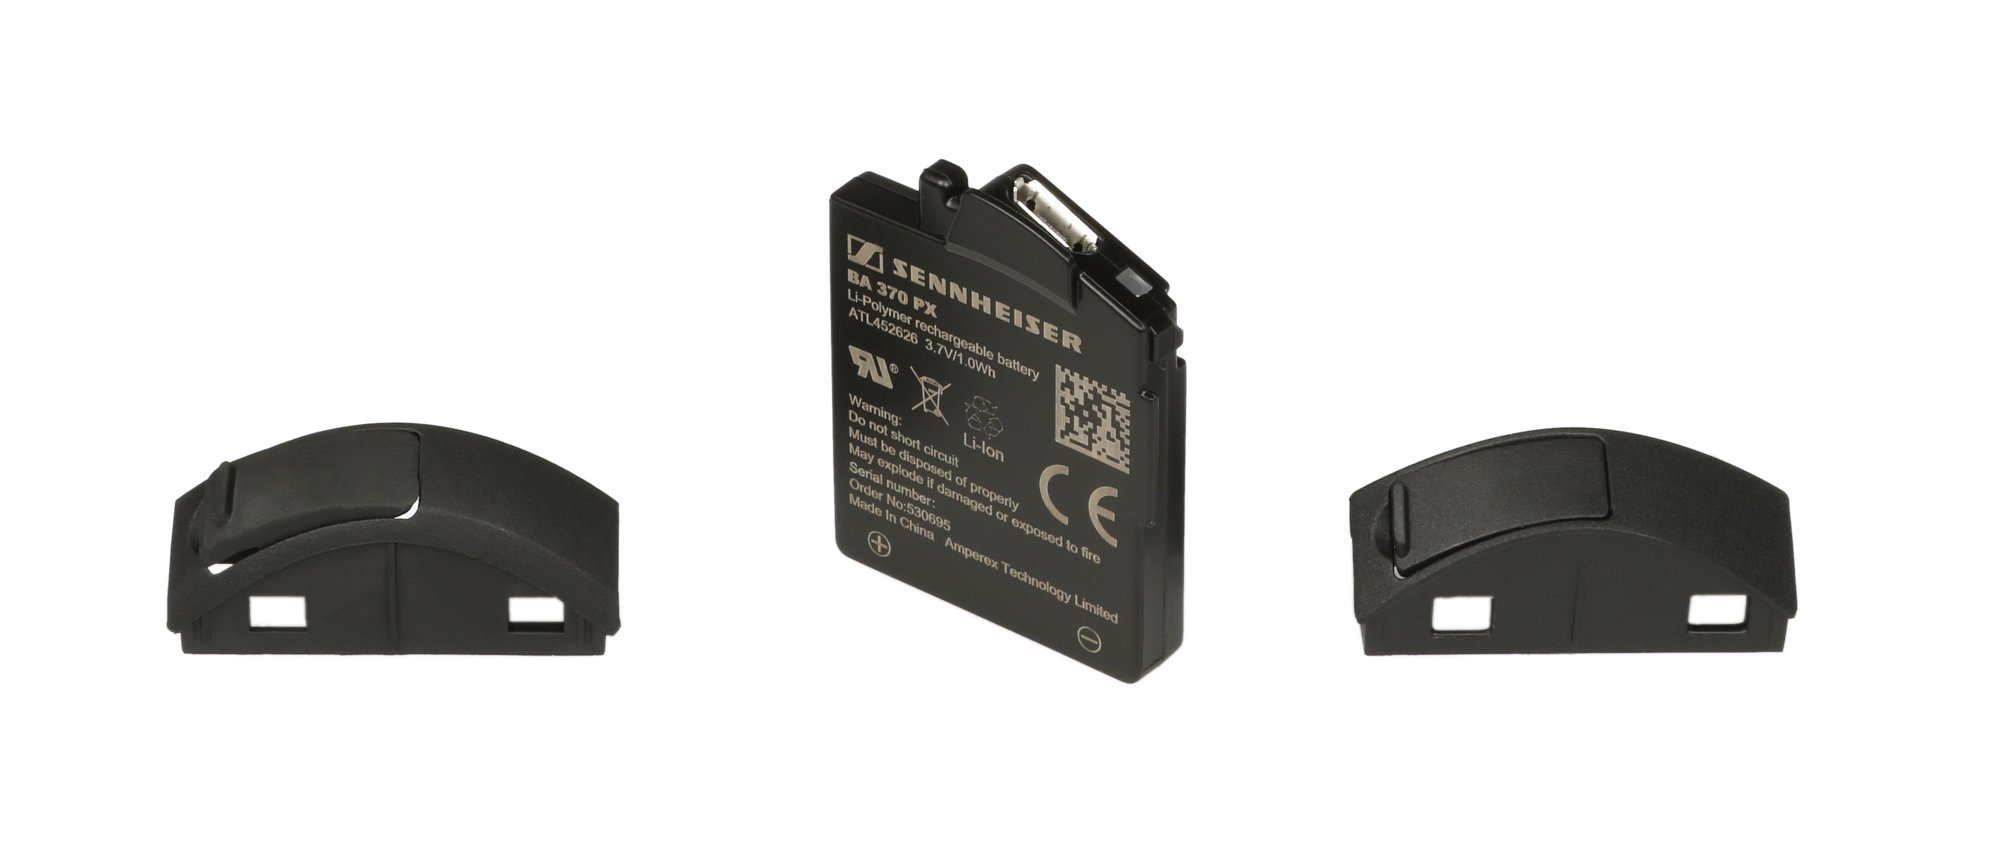 Battery for PXC 310 and PXC 310-BT